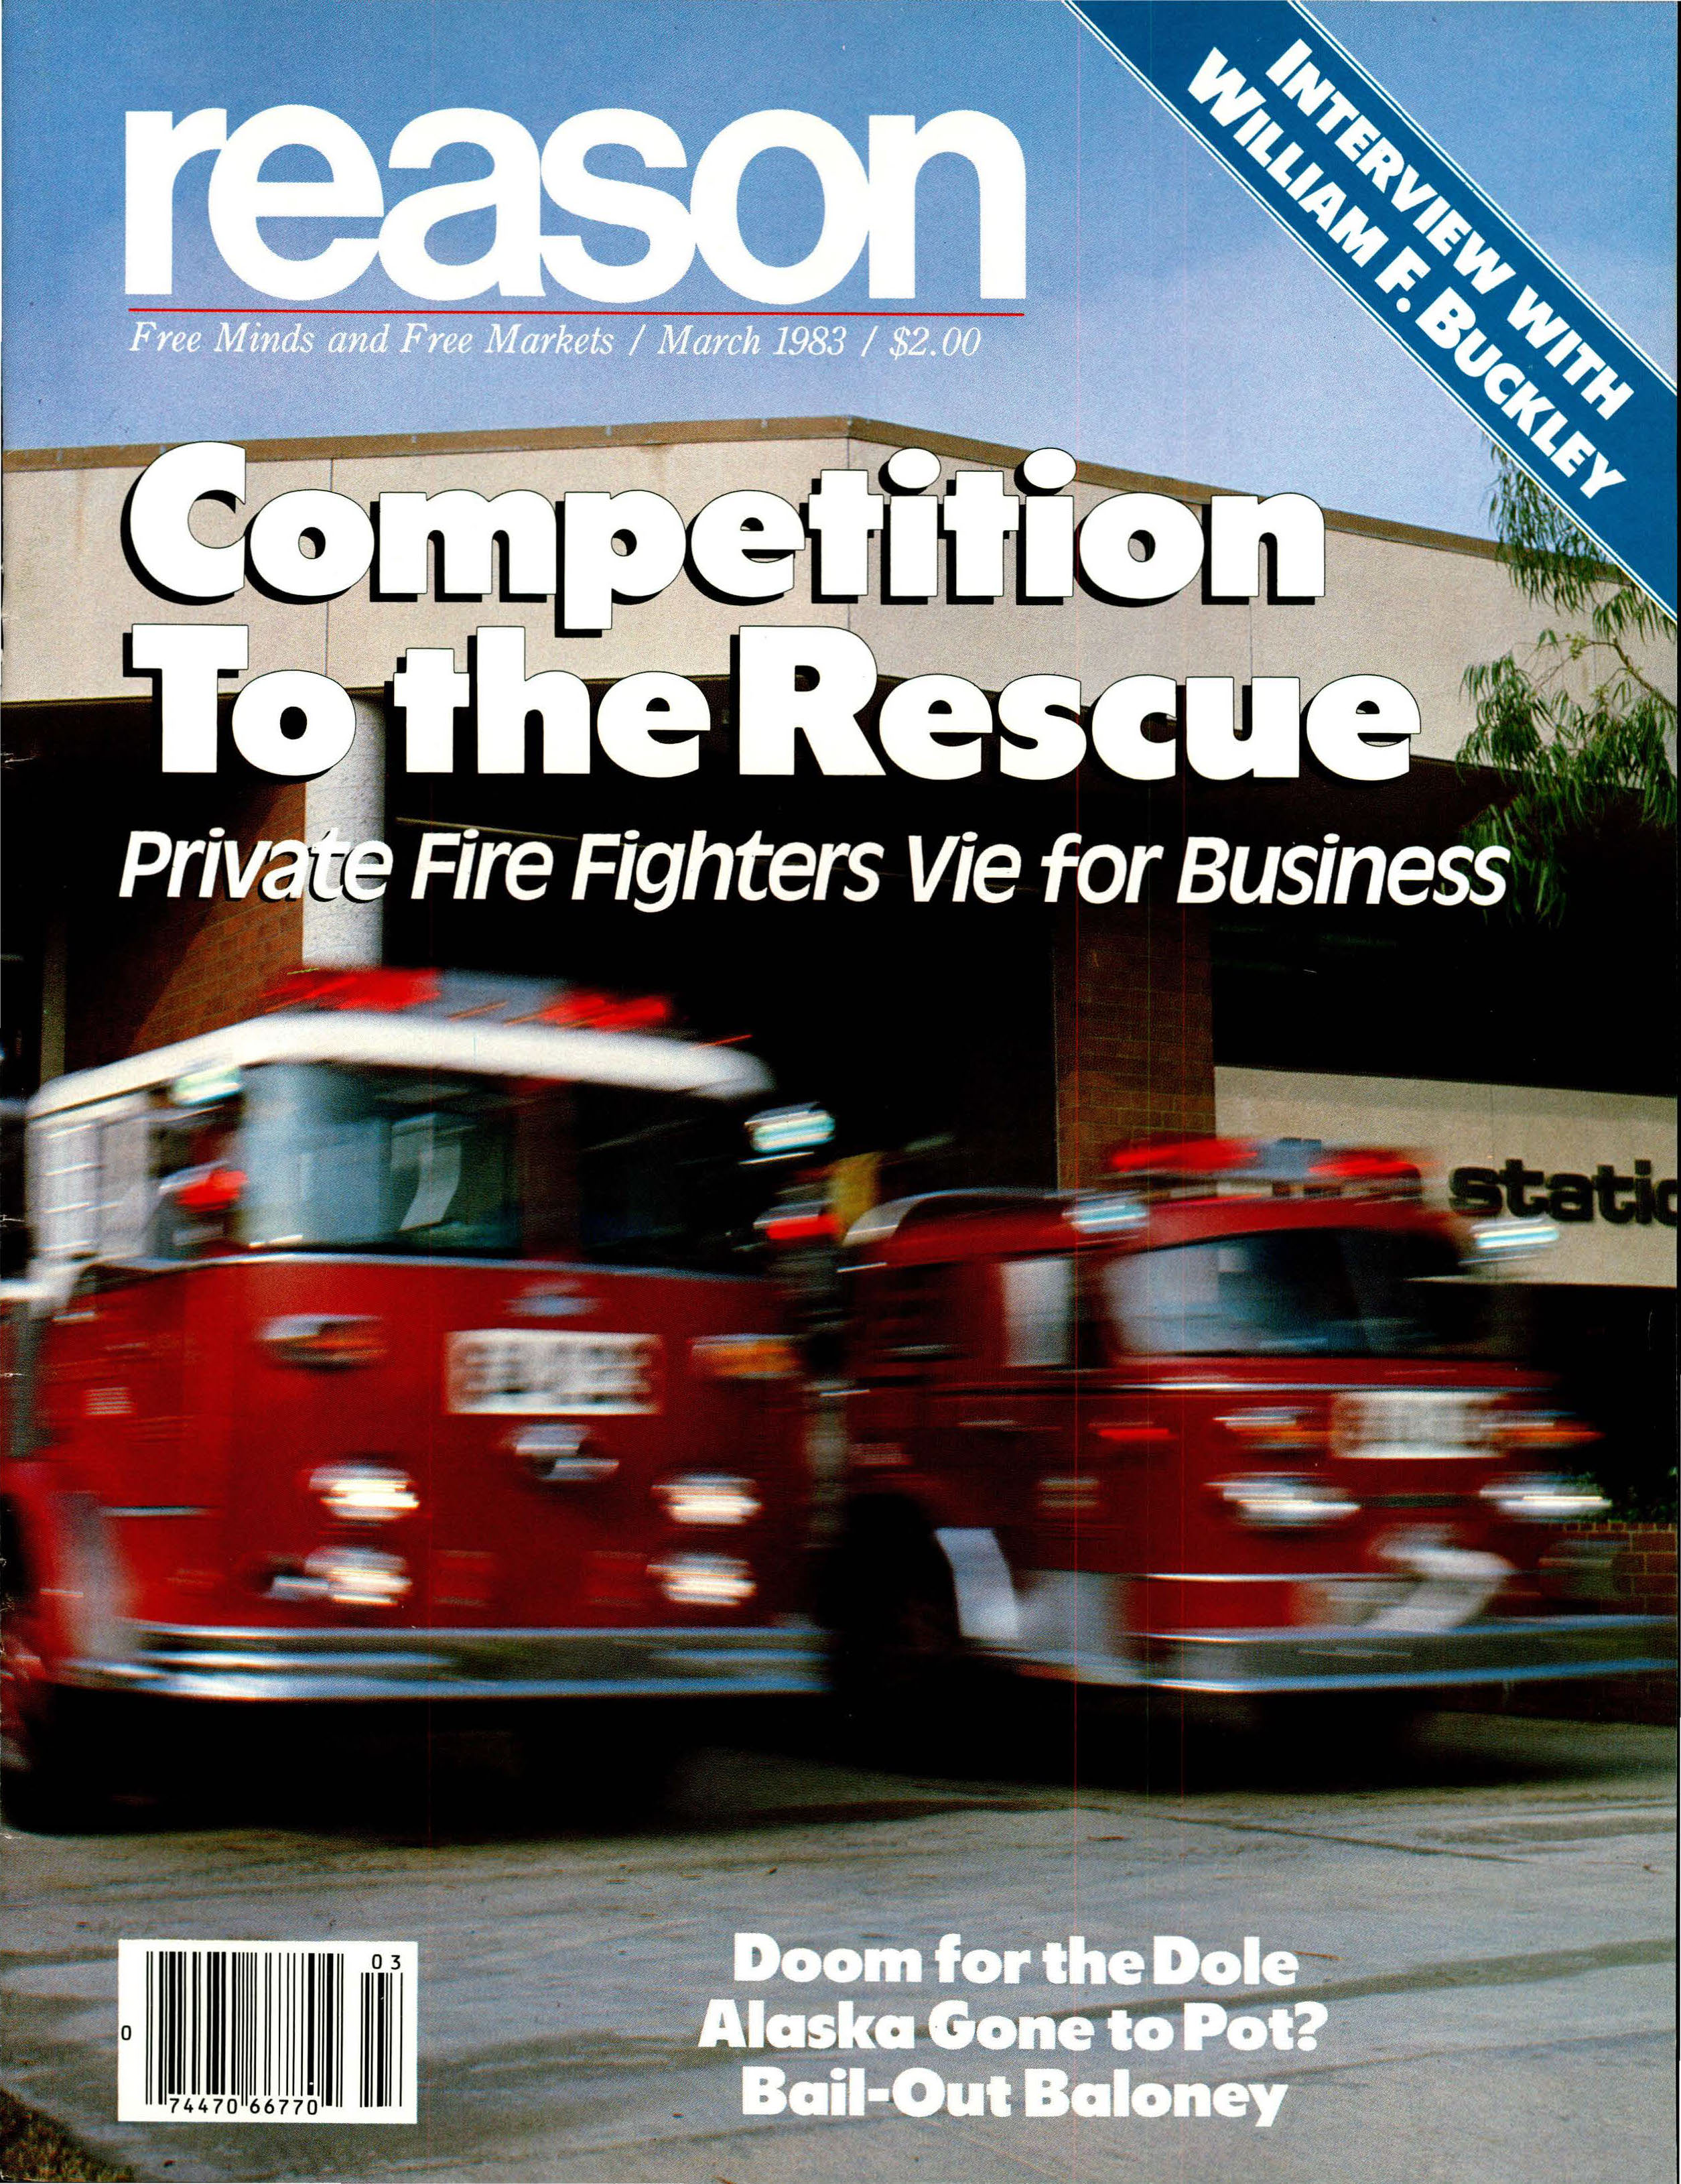 Reason Magazine, March 1983 cover image